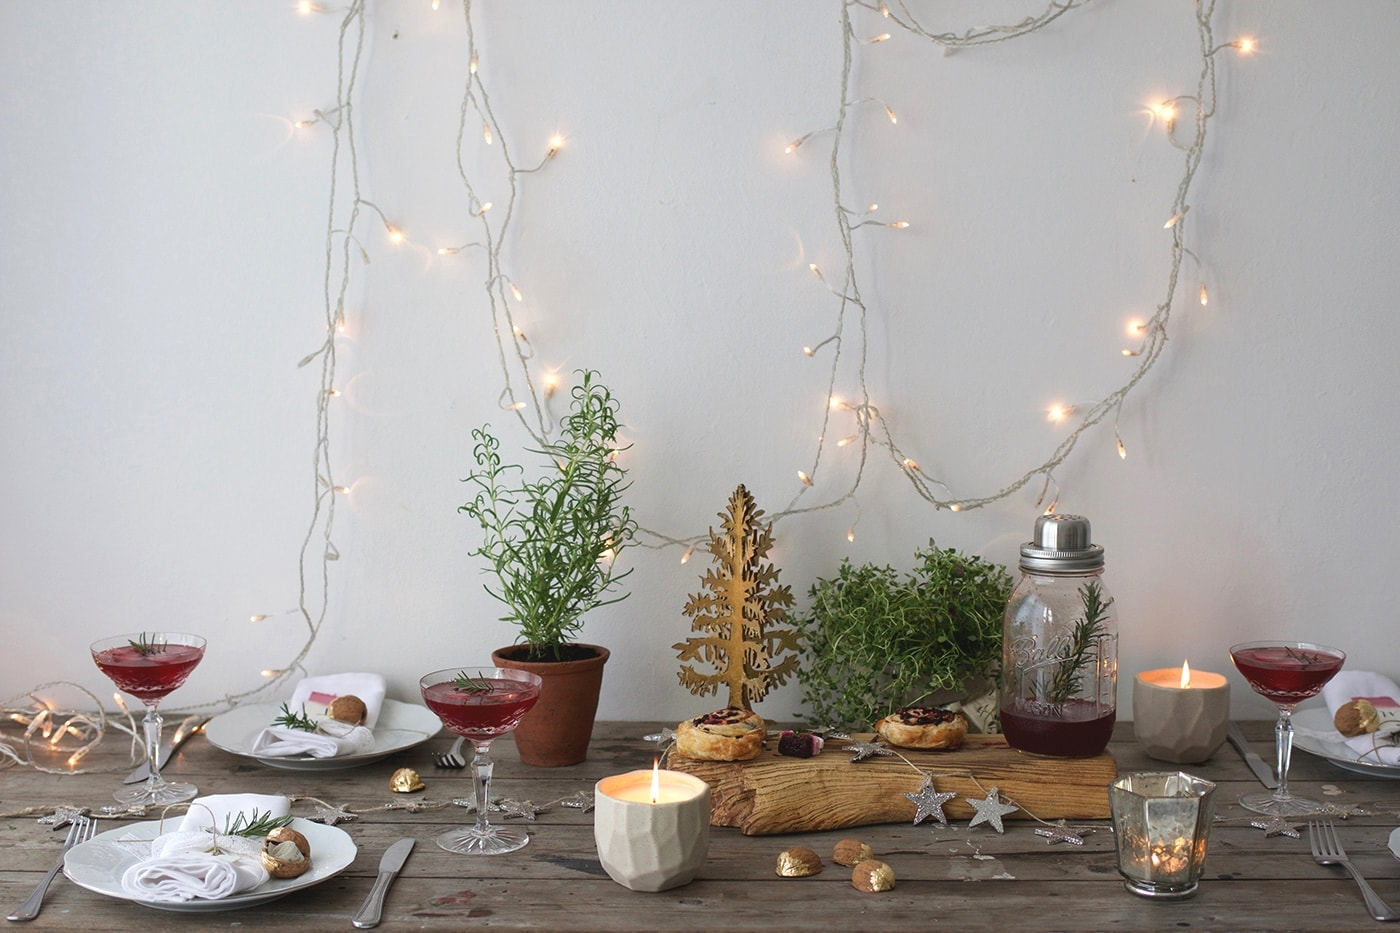 12 styled days of Christmas with West Elm | styled table | lobster and swan